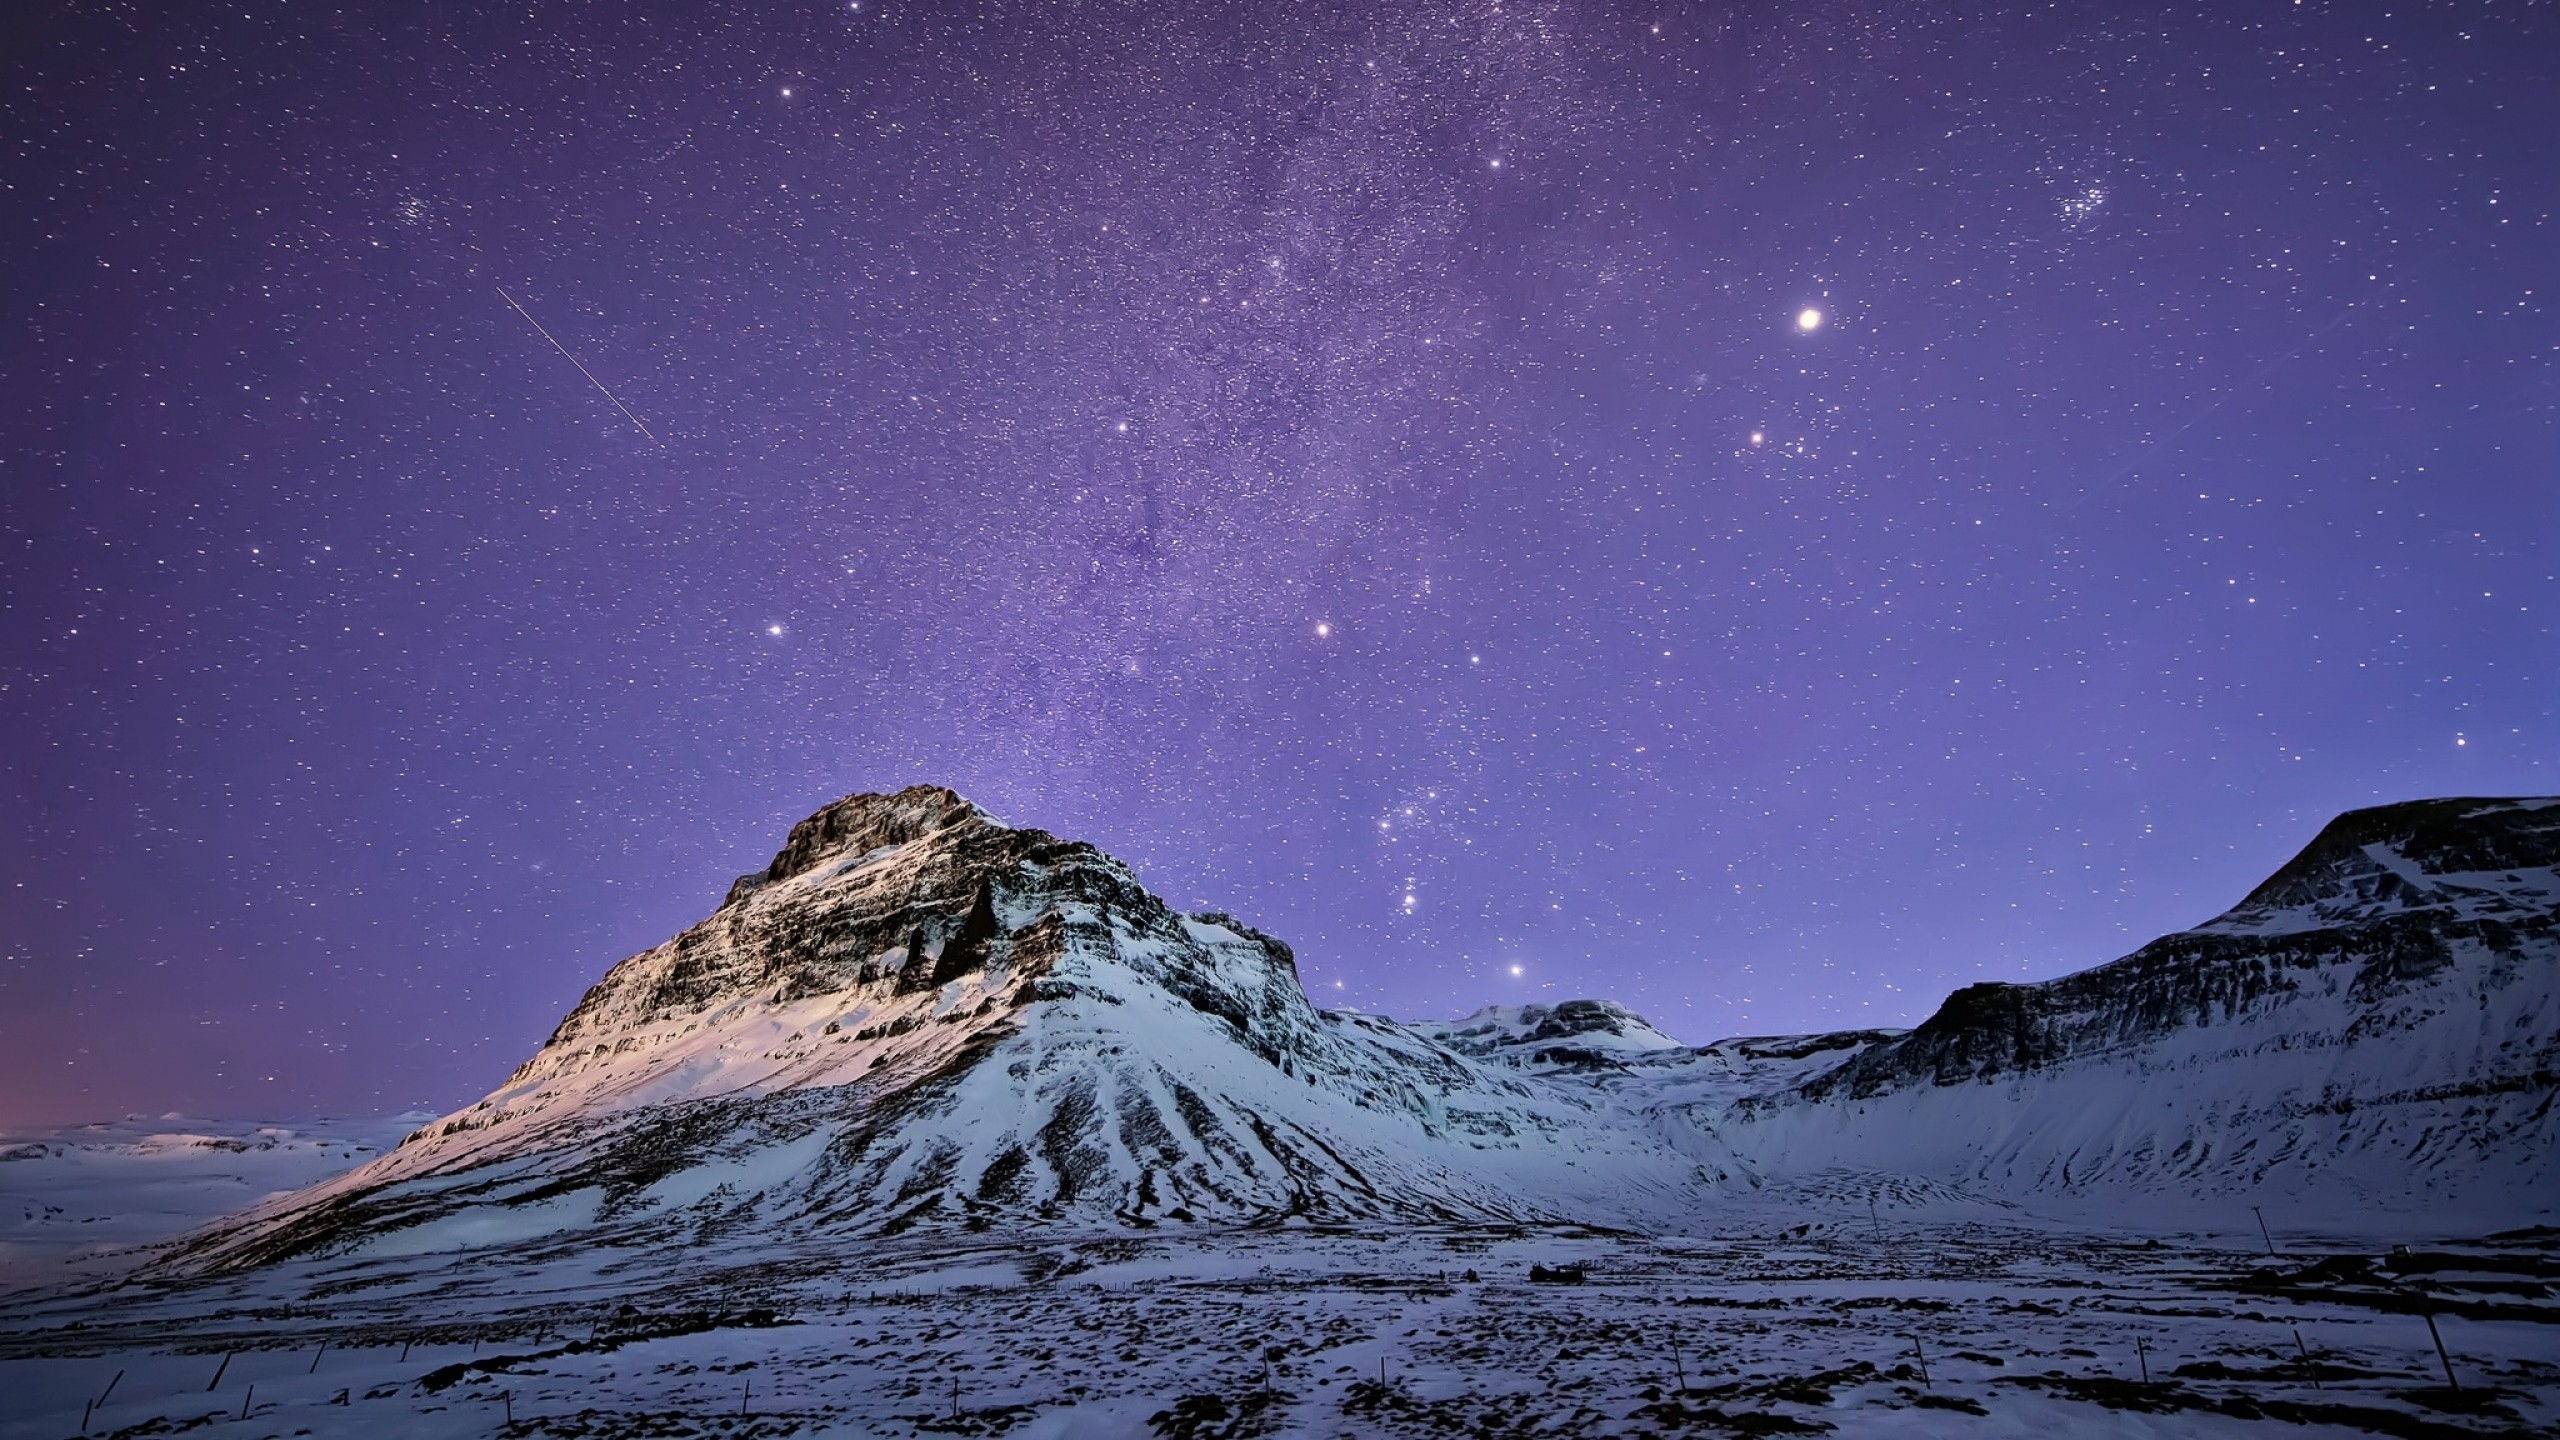 Preview wallpaper iceland, mountains, snow, night, lilac, sky, stars,